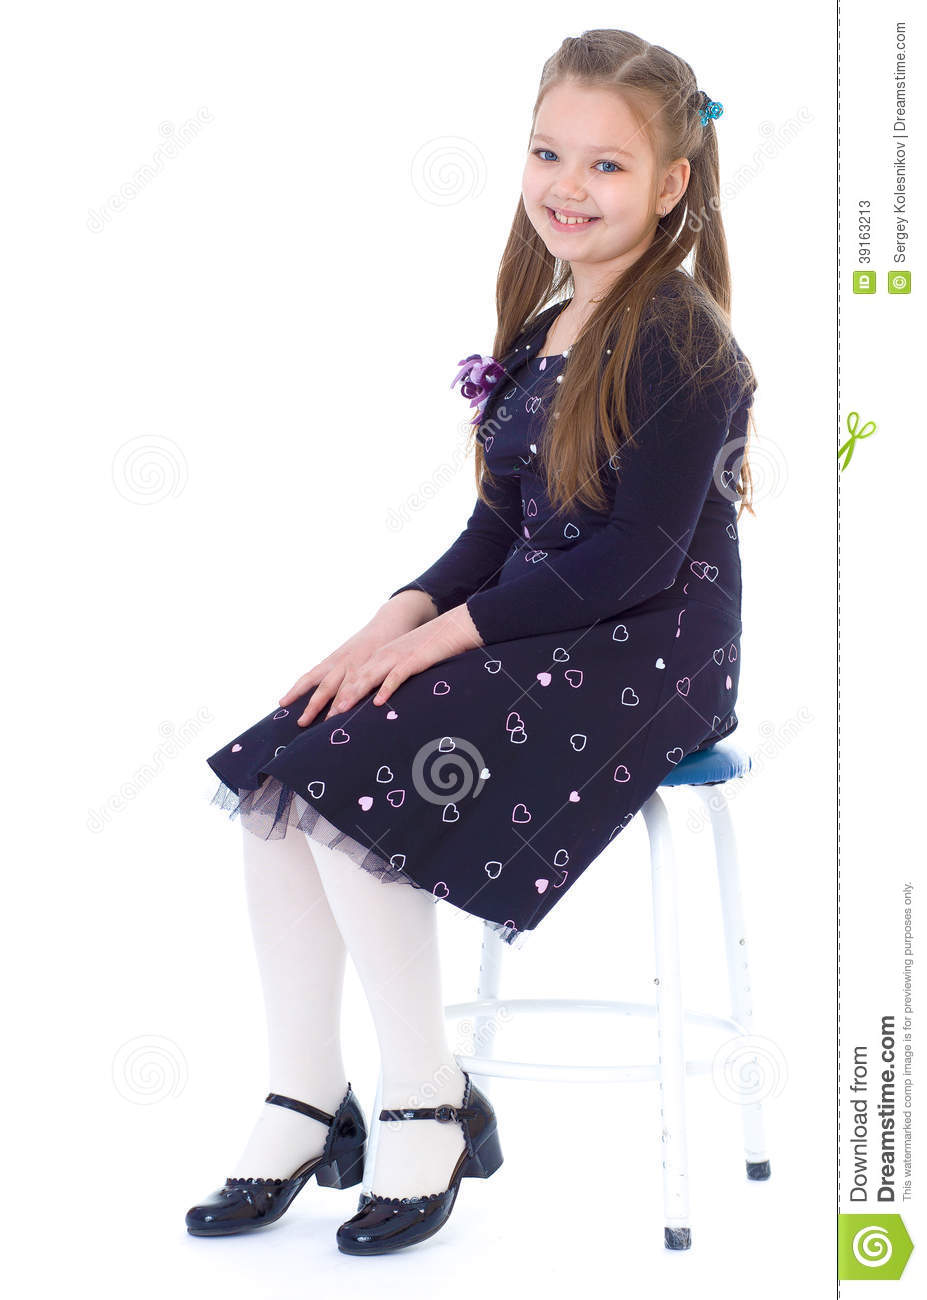 Black child sitting in chair - Royalty Free Stock Photo